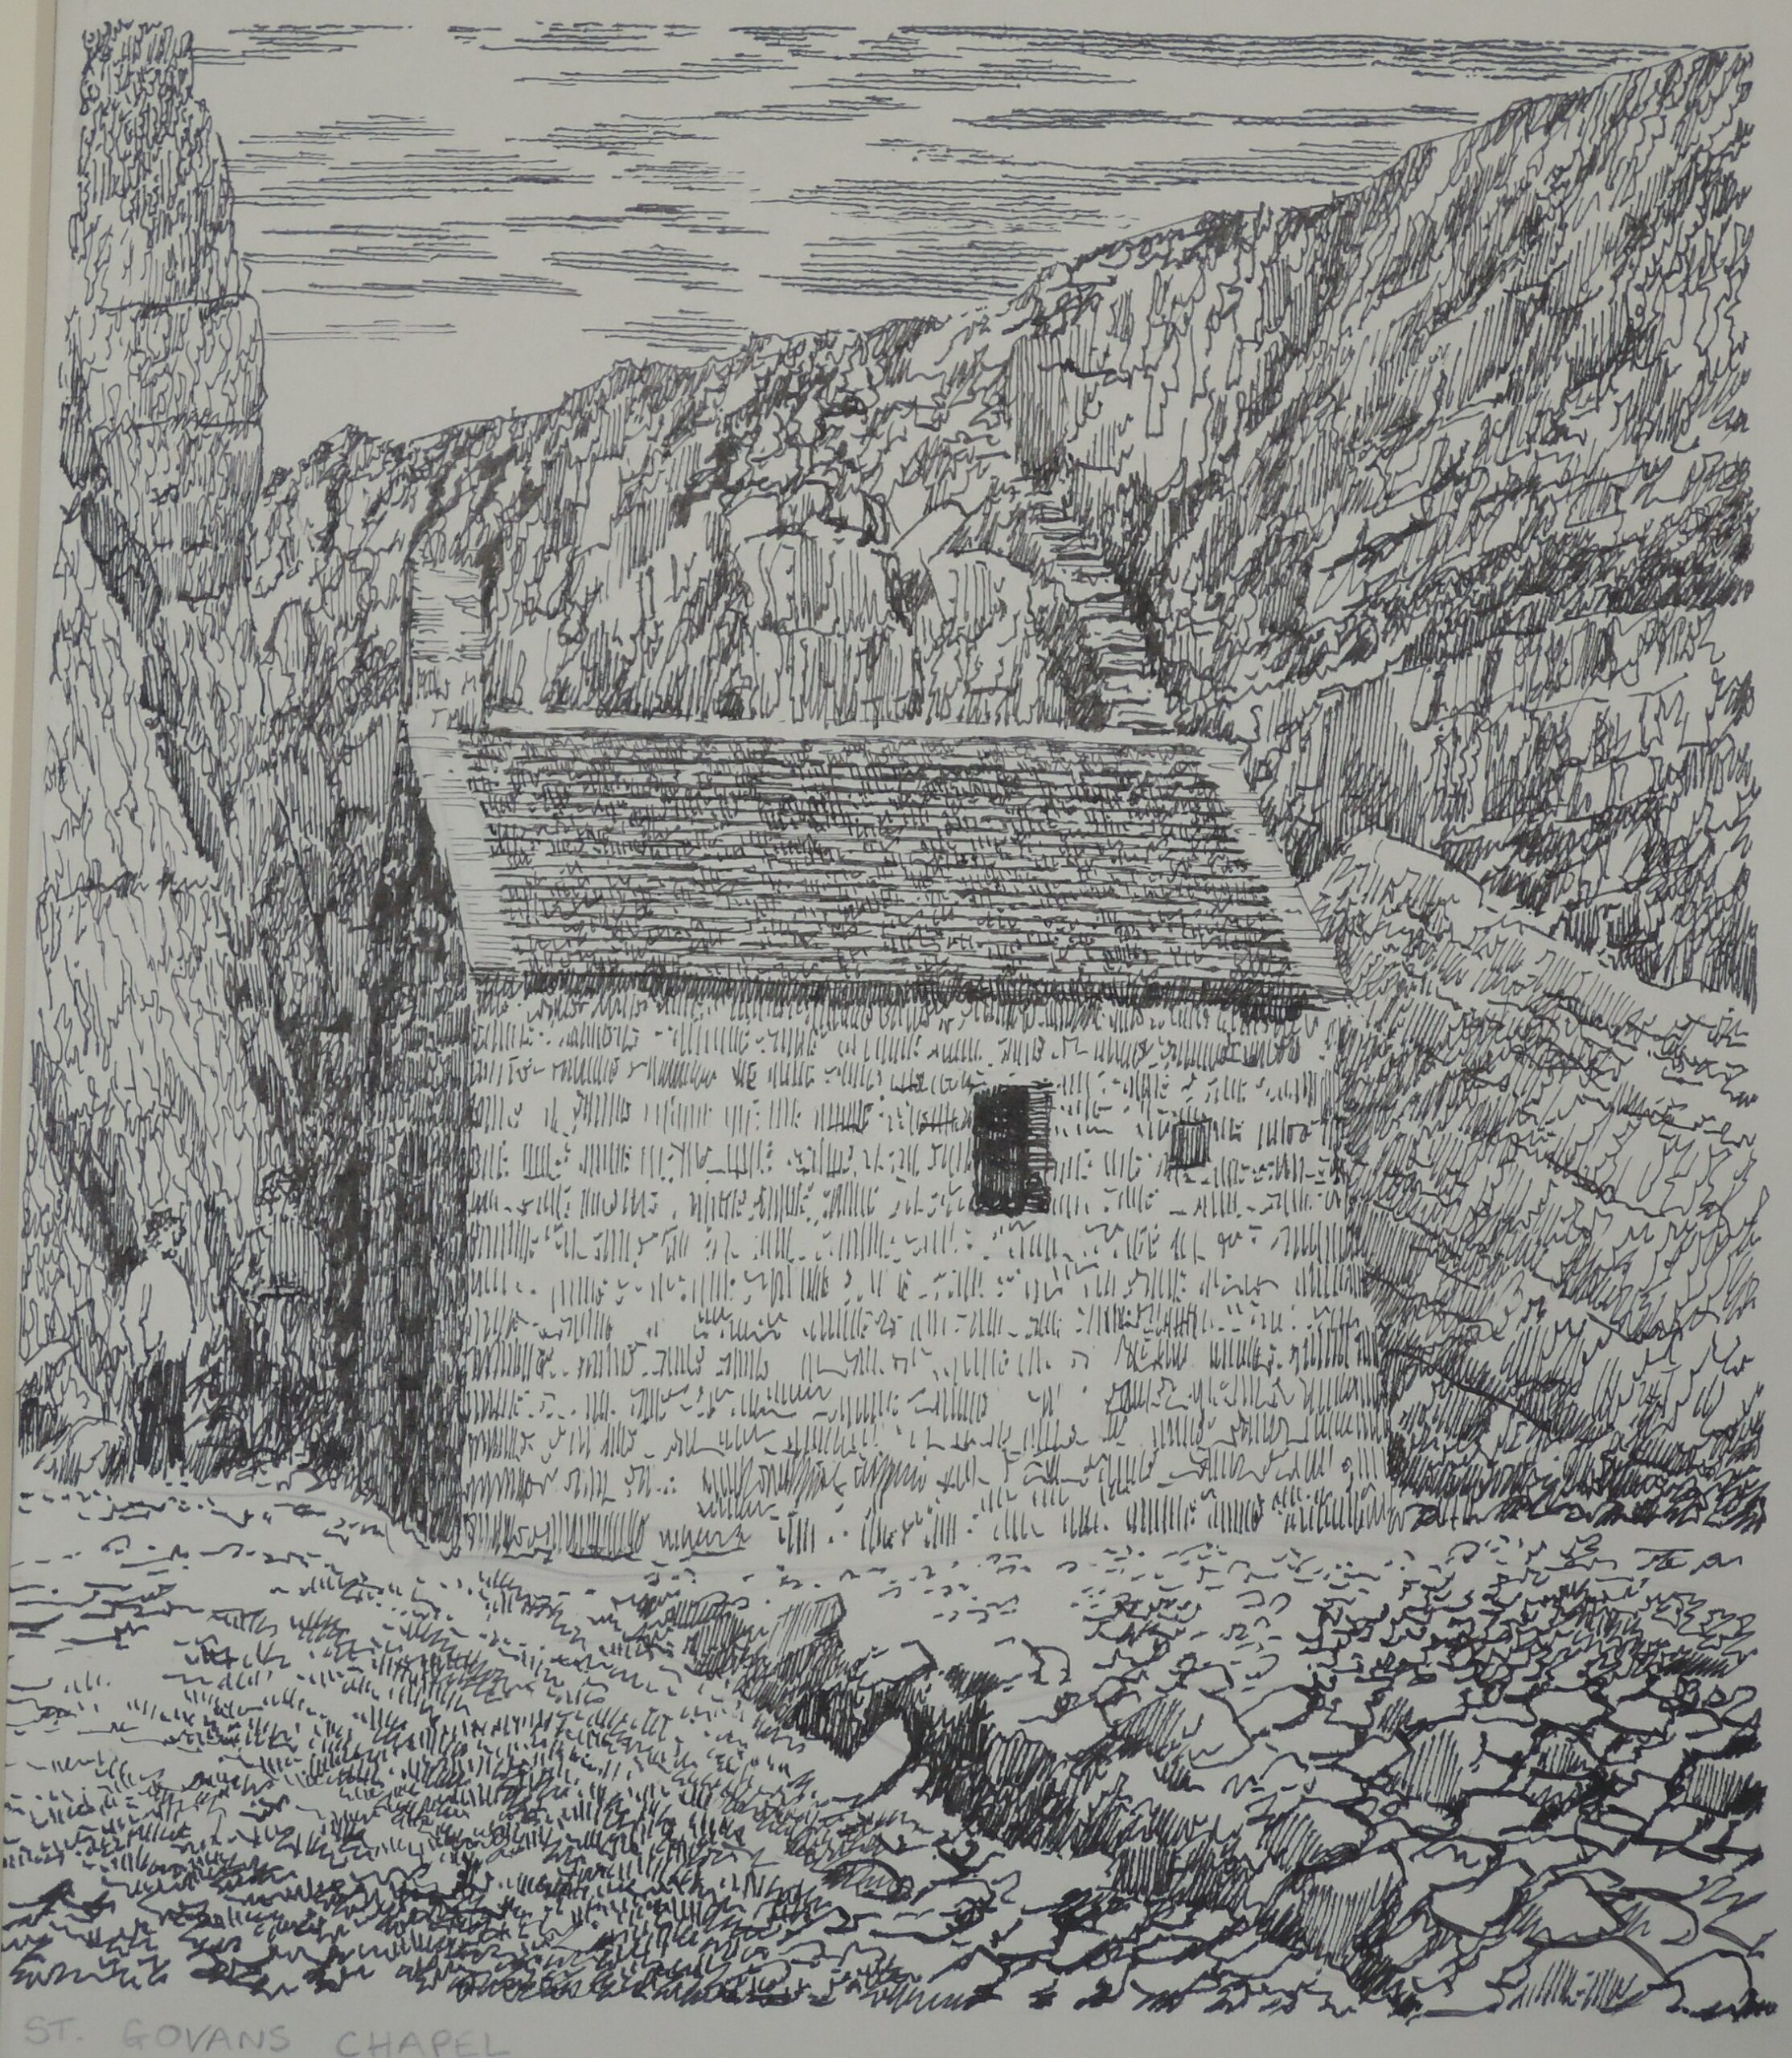 Sketches by Alfred Wainwright are up for auction